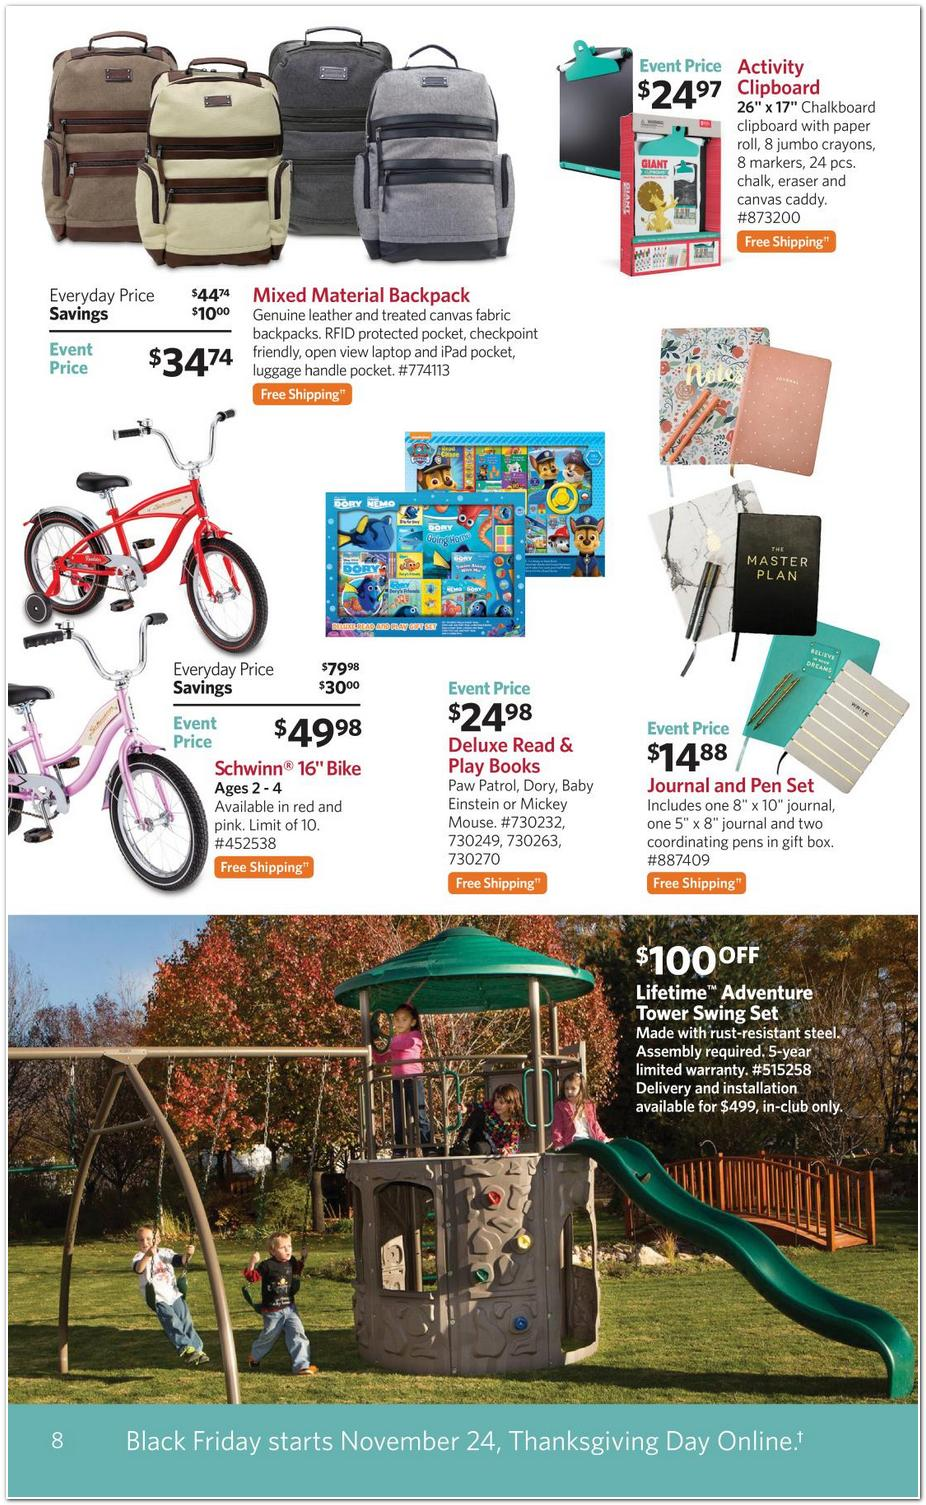 sams-club-black-friday-2016-ad-scan-p-8